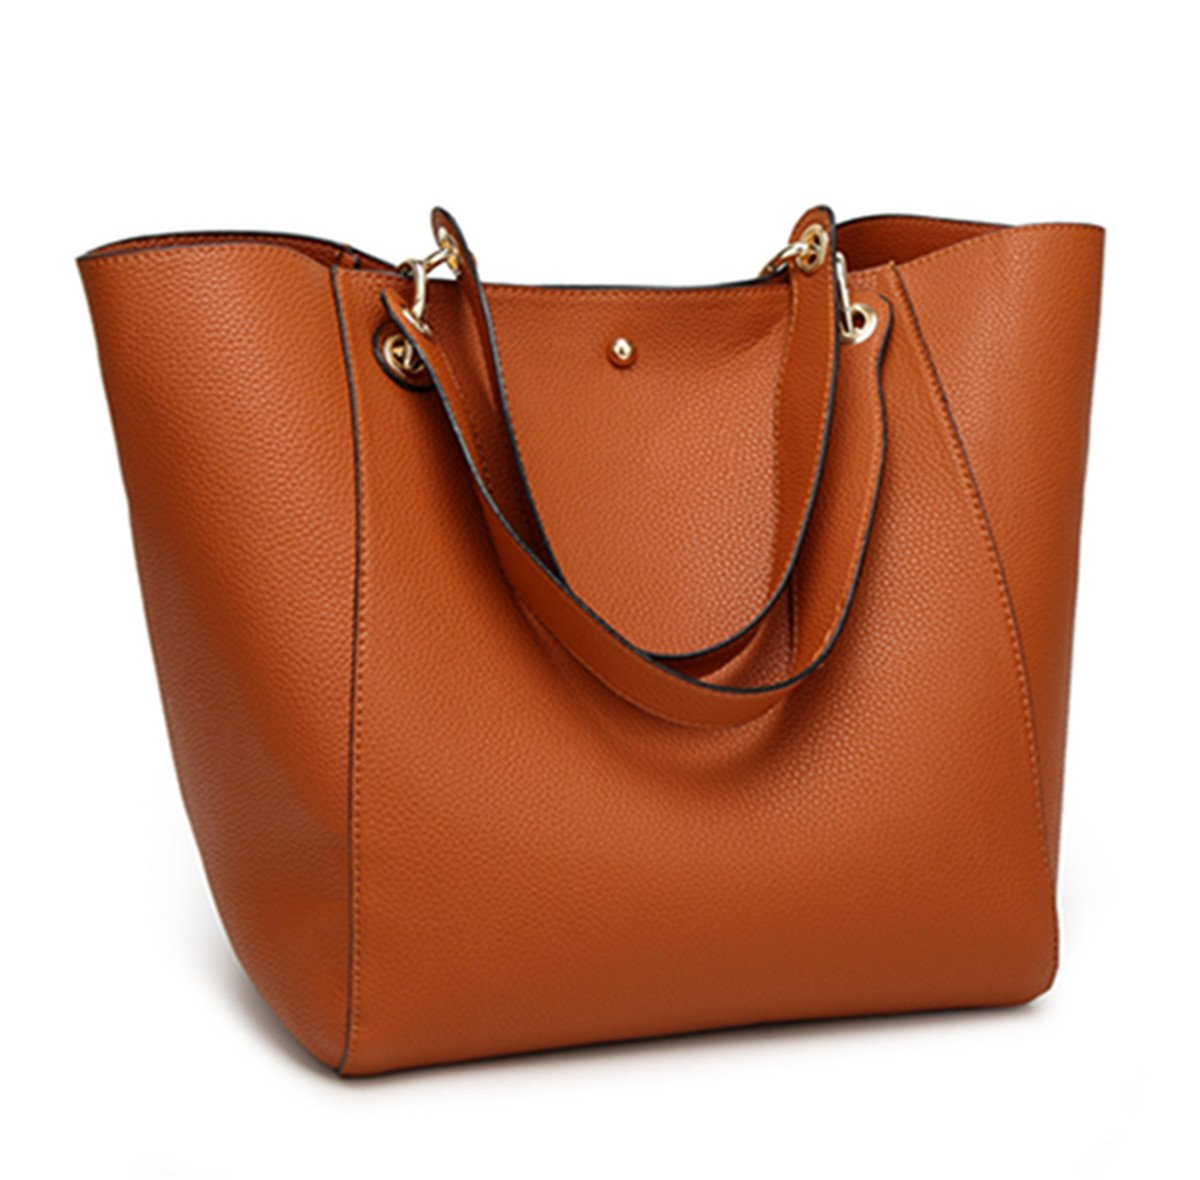 SIFINI Women' s Fashion Waterproof Handbags Synthetic Leather Tote Shoulder Bags Travel Mommy Bag